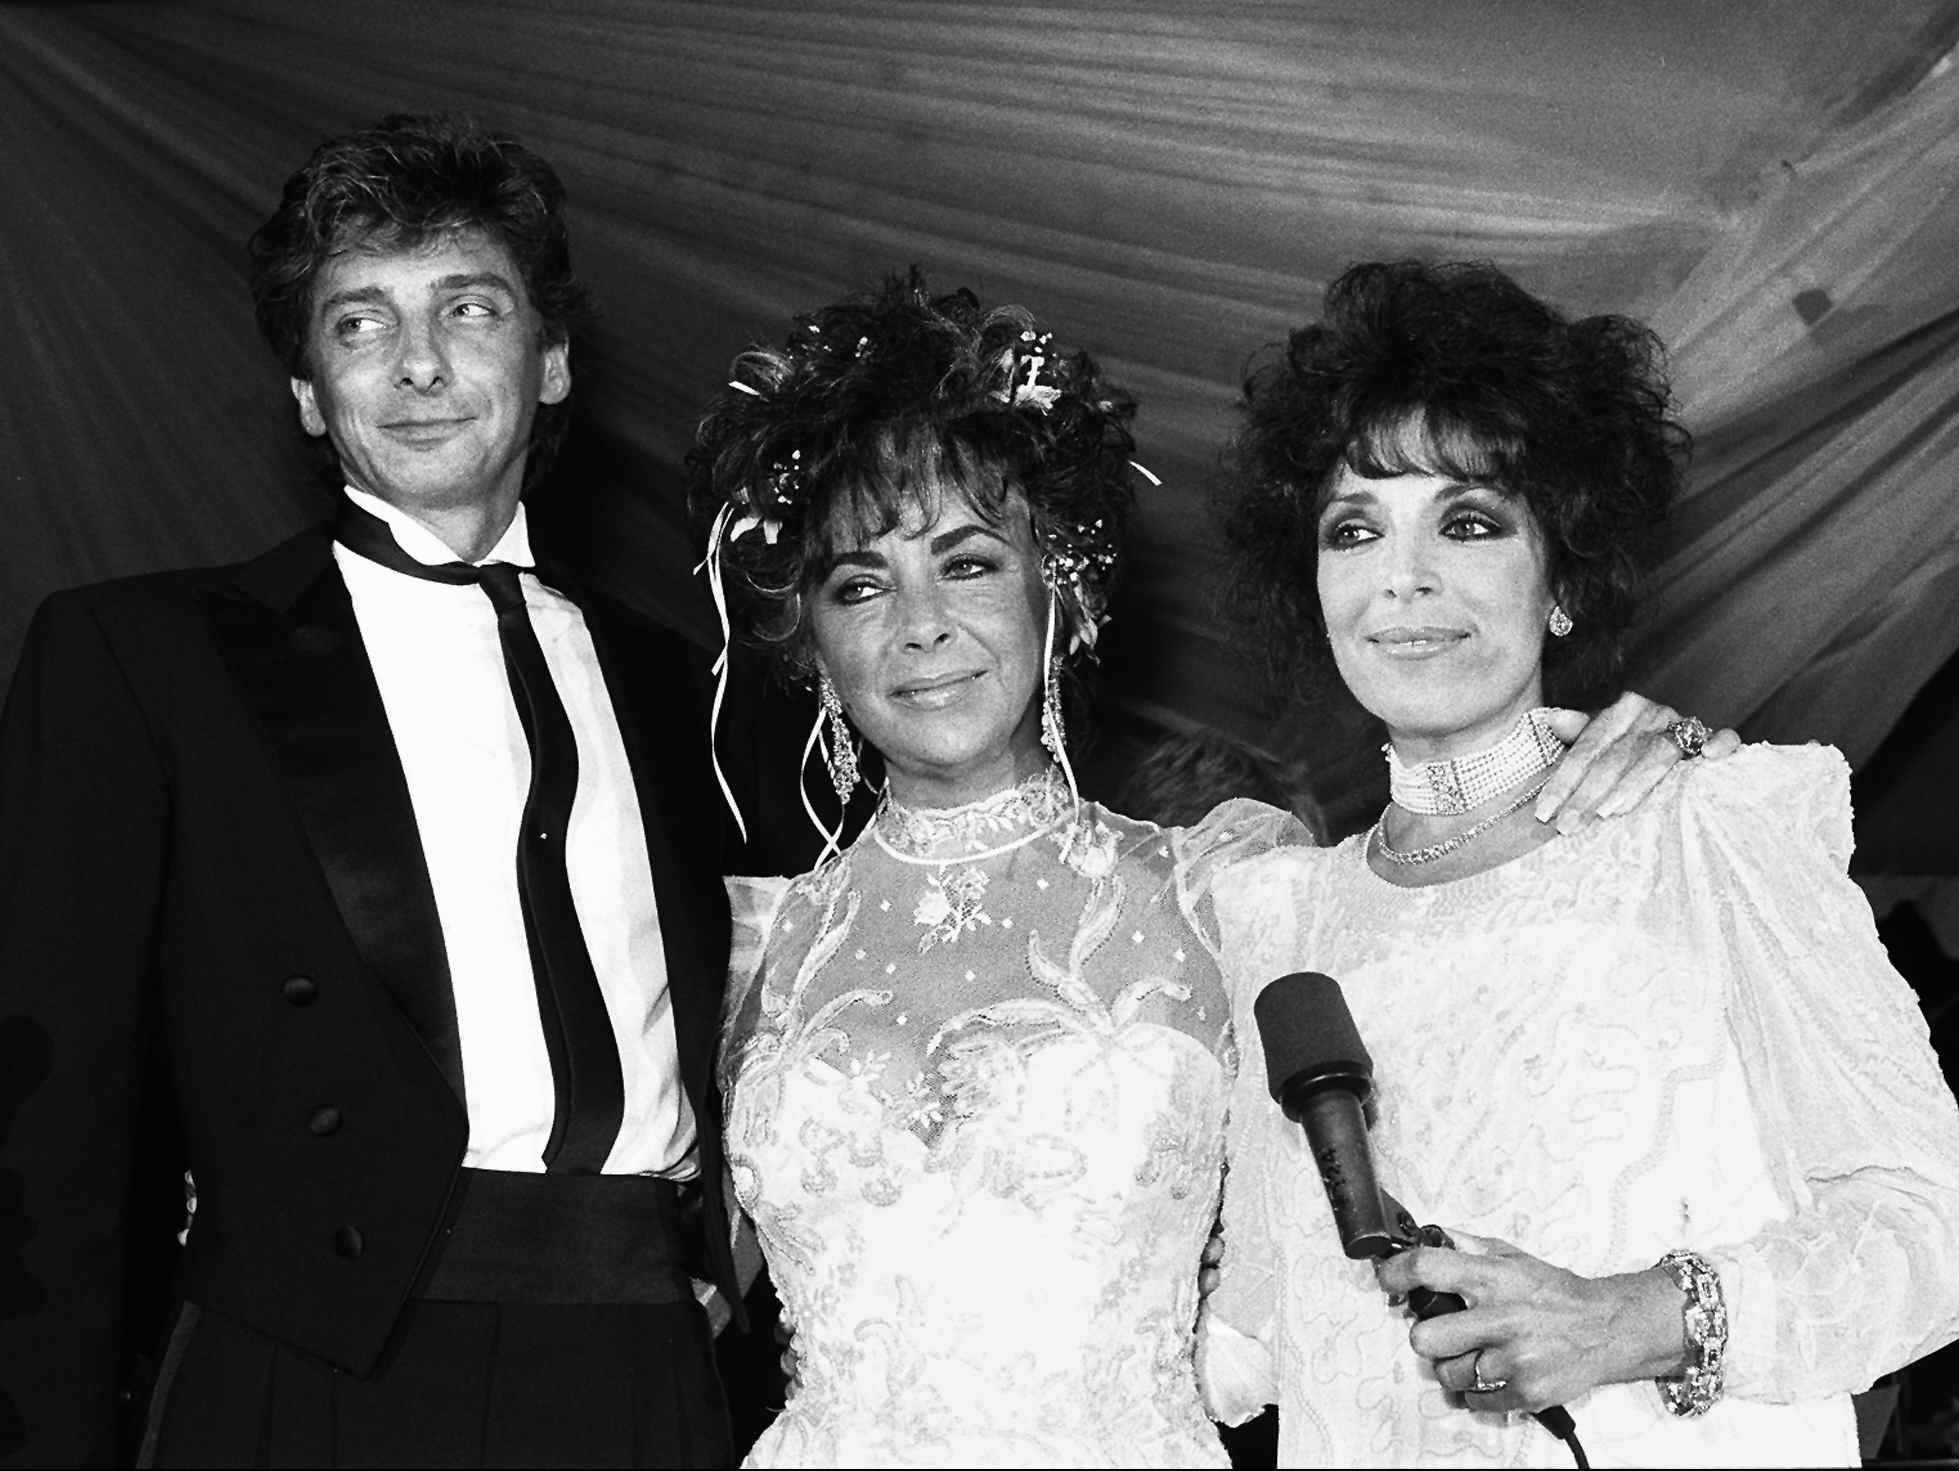 Barry Manilow, Elizabeth Taylor (center) and Carole Bayer Sager attend a fundraiser for the American Foundation for AIDS research in Los Angeles July 25, 1986.